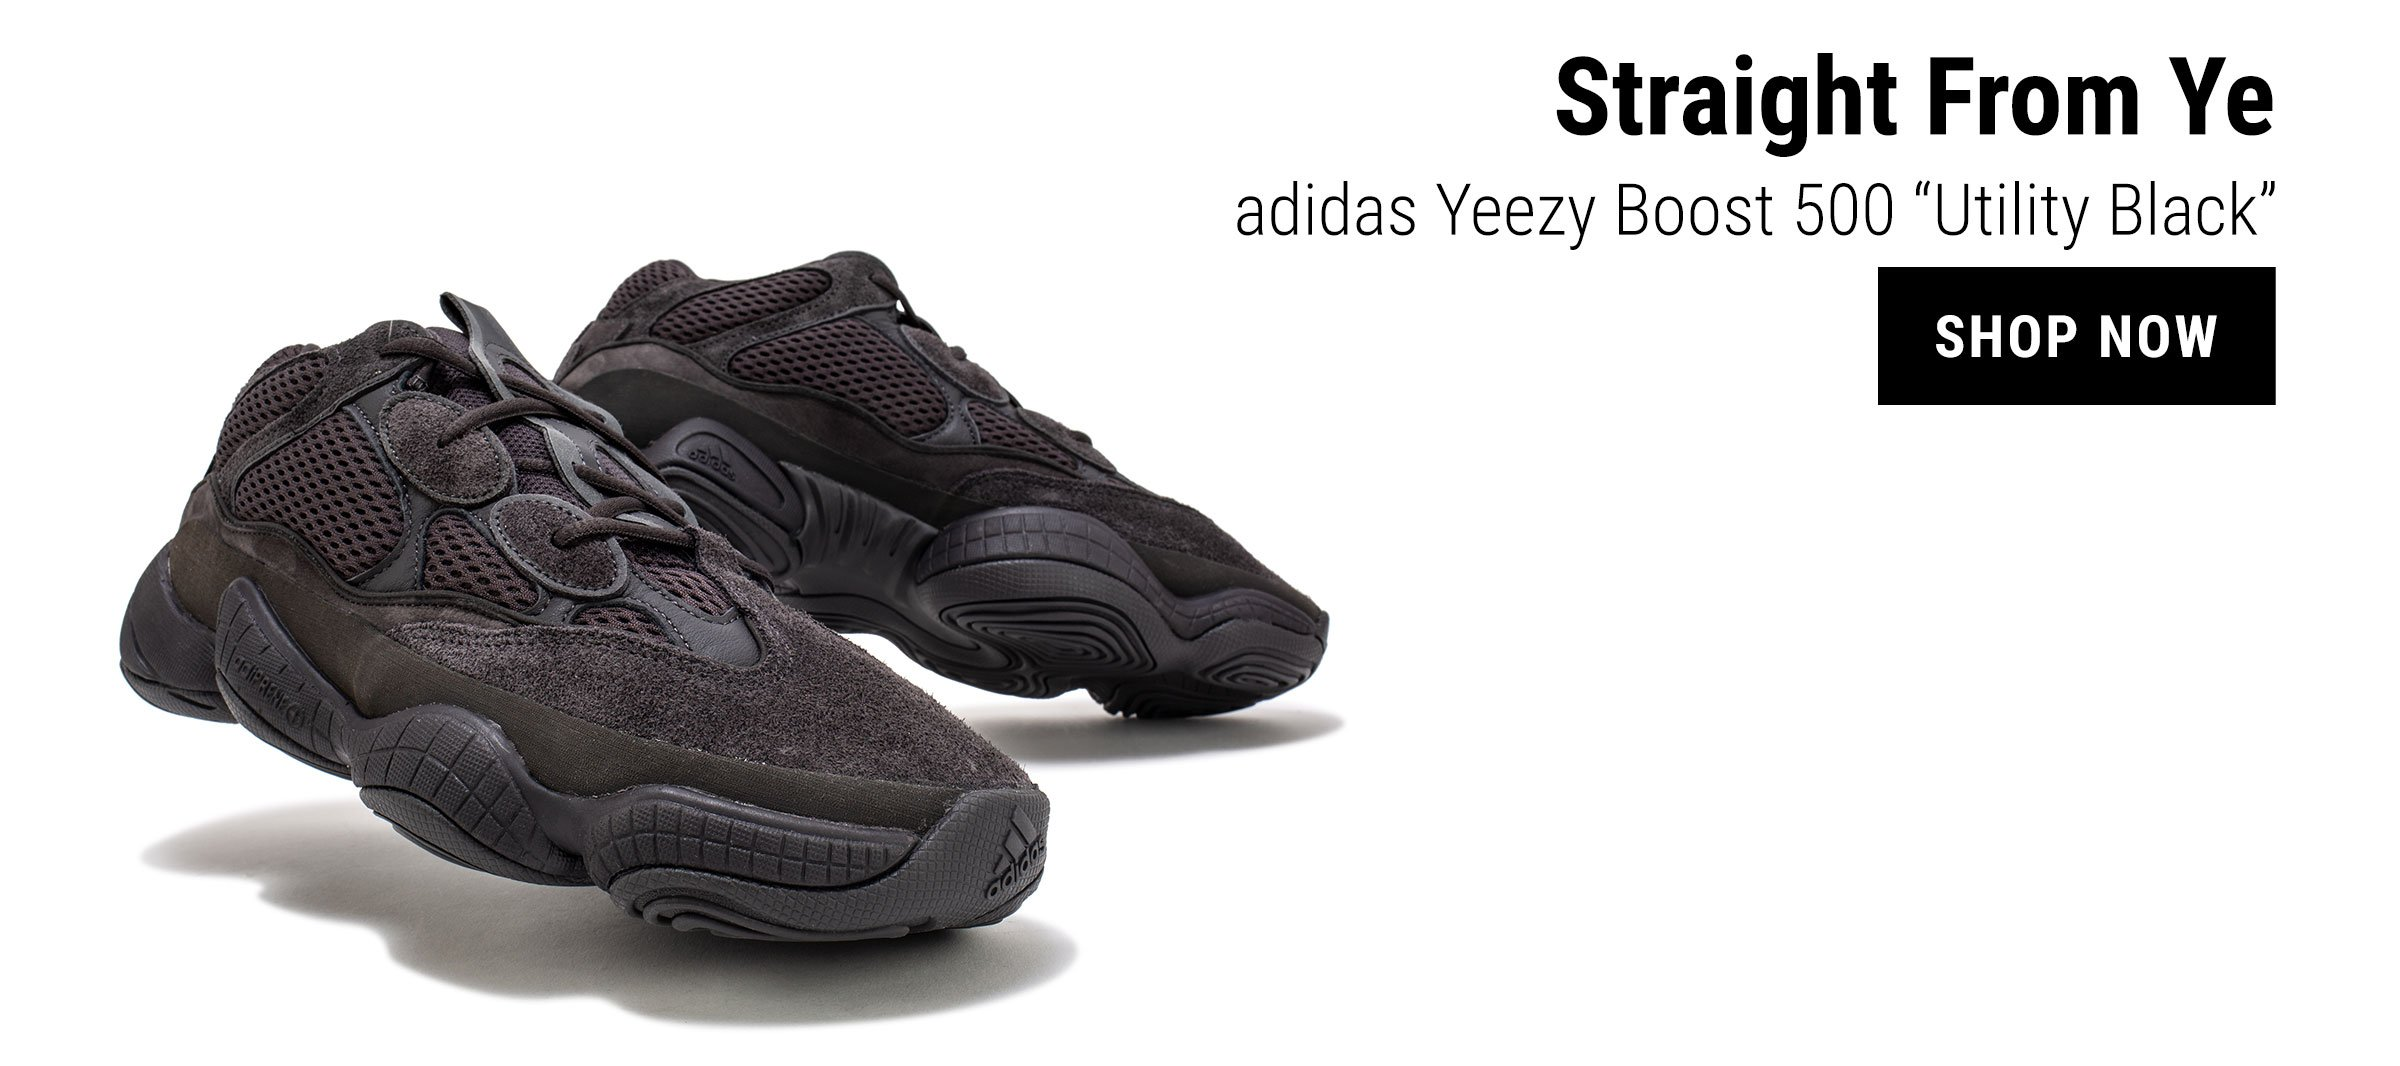 610c42a4e99 Straight From Ye  the latest from adidas x Yeezy feat. the Yeezy ...